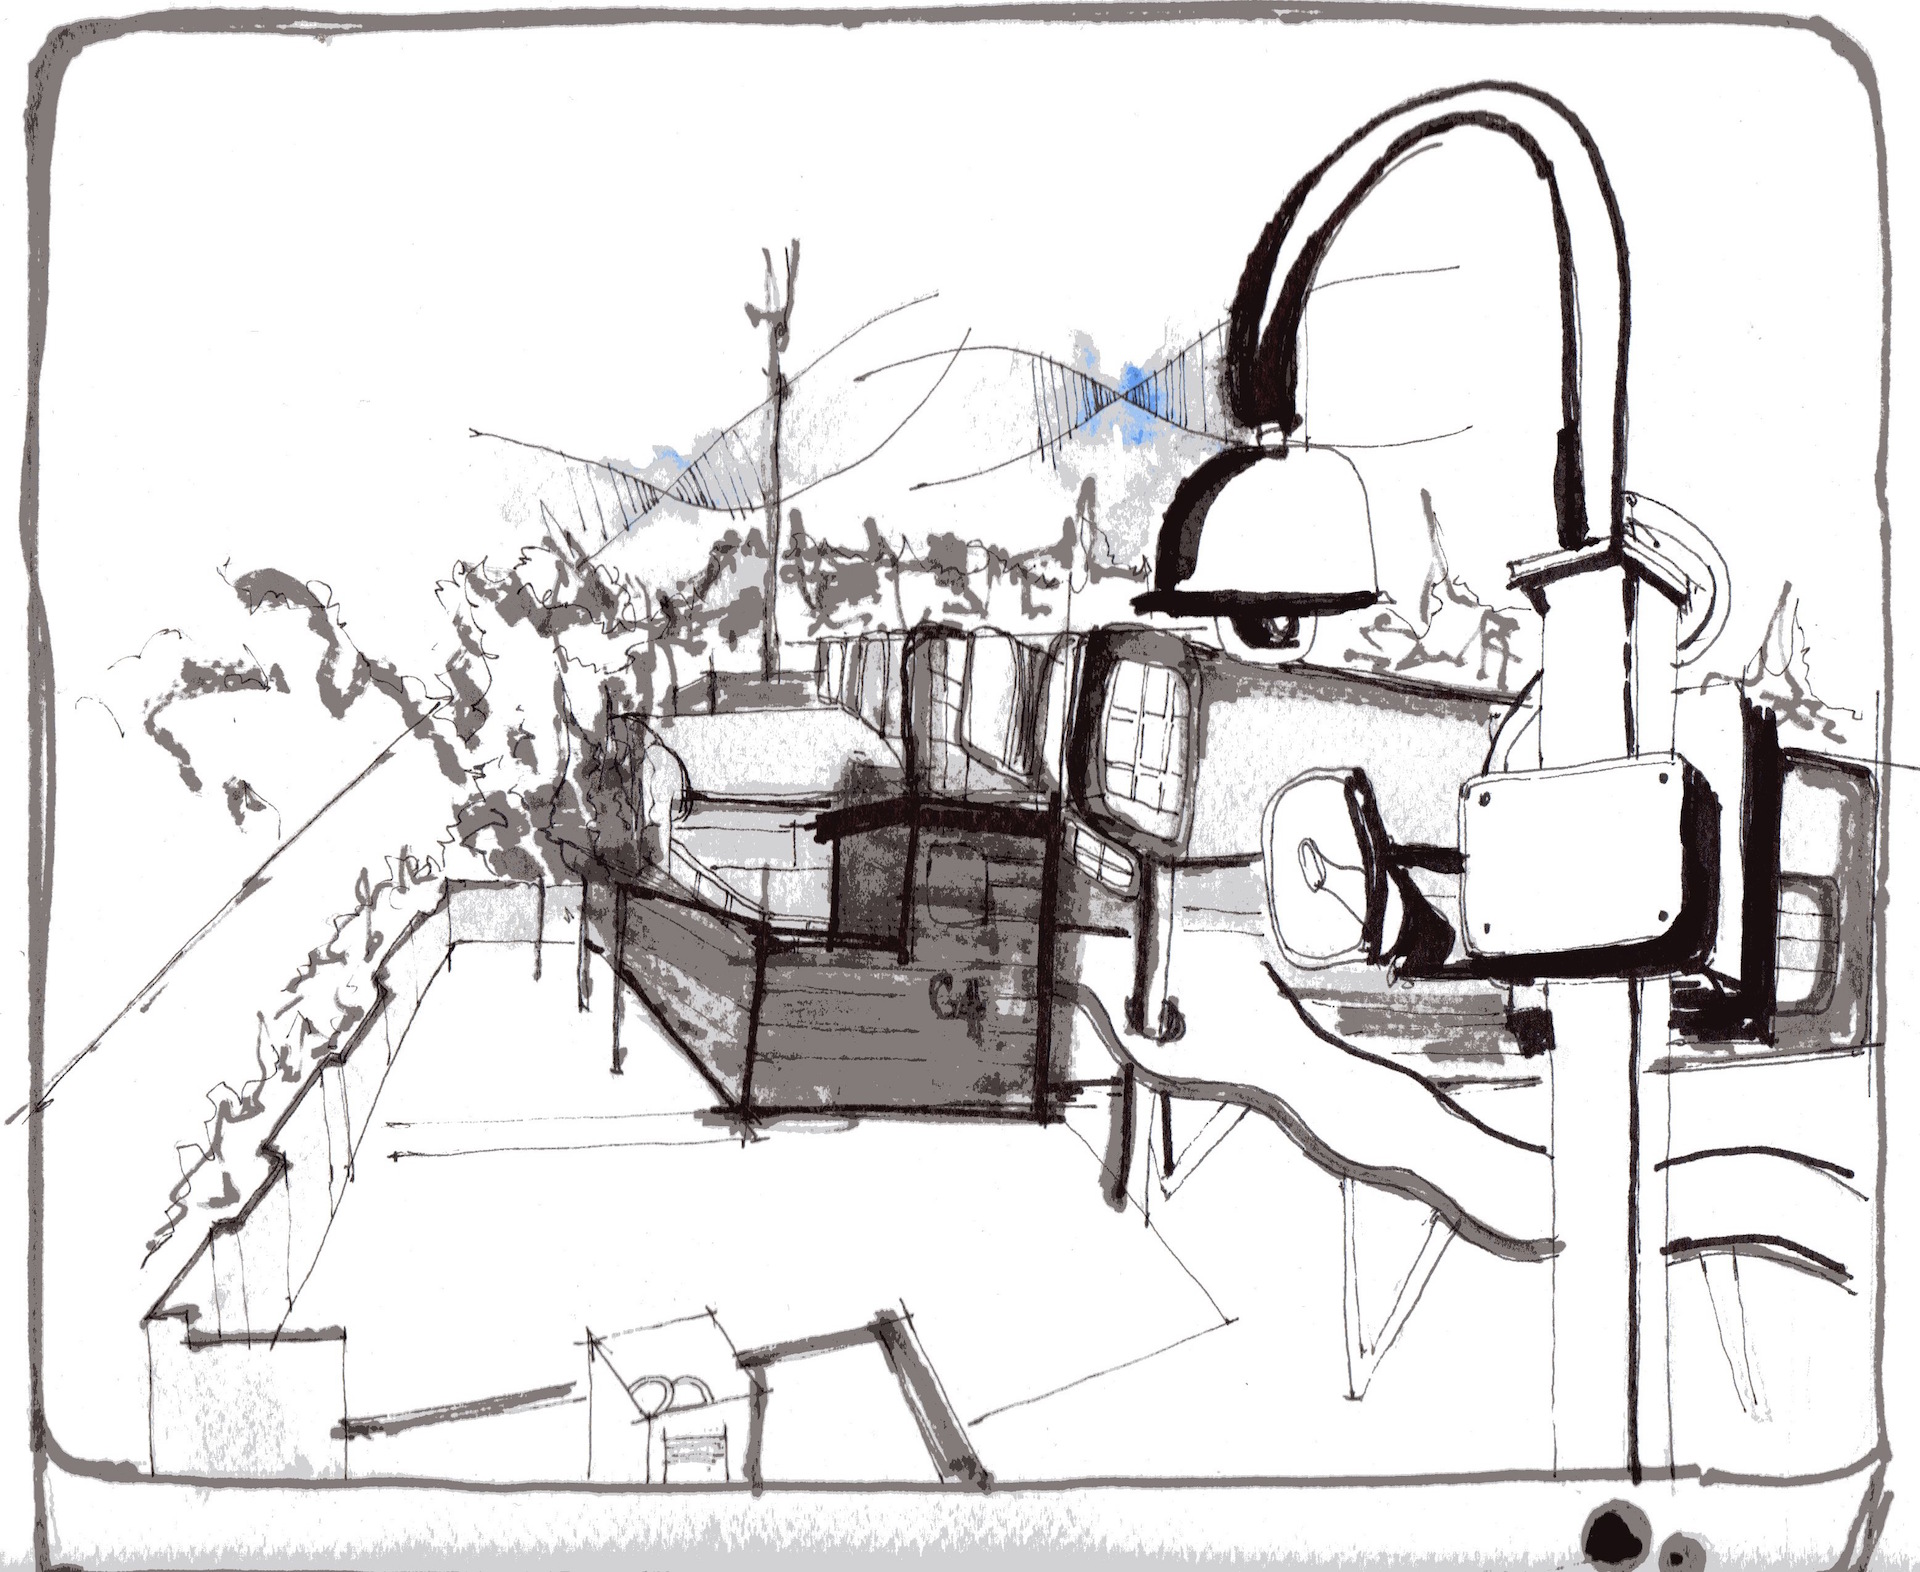 """Paulina V. Pulido, """"View of the C4i4 Exterior and Surveillance Camera from the Parking Lot Rooftop,"""" Mexico City, Mexico, 2014. Ink on paper."""